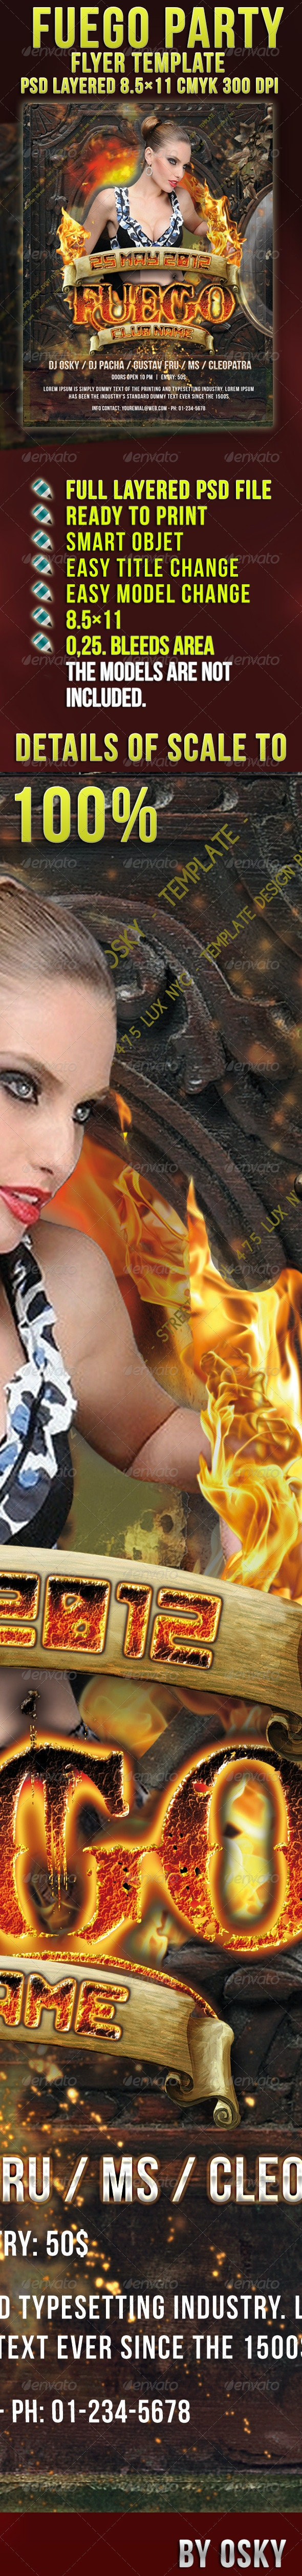 Fuego Party Flyer - Clubs & Parties Events